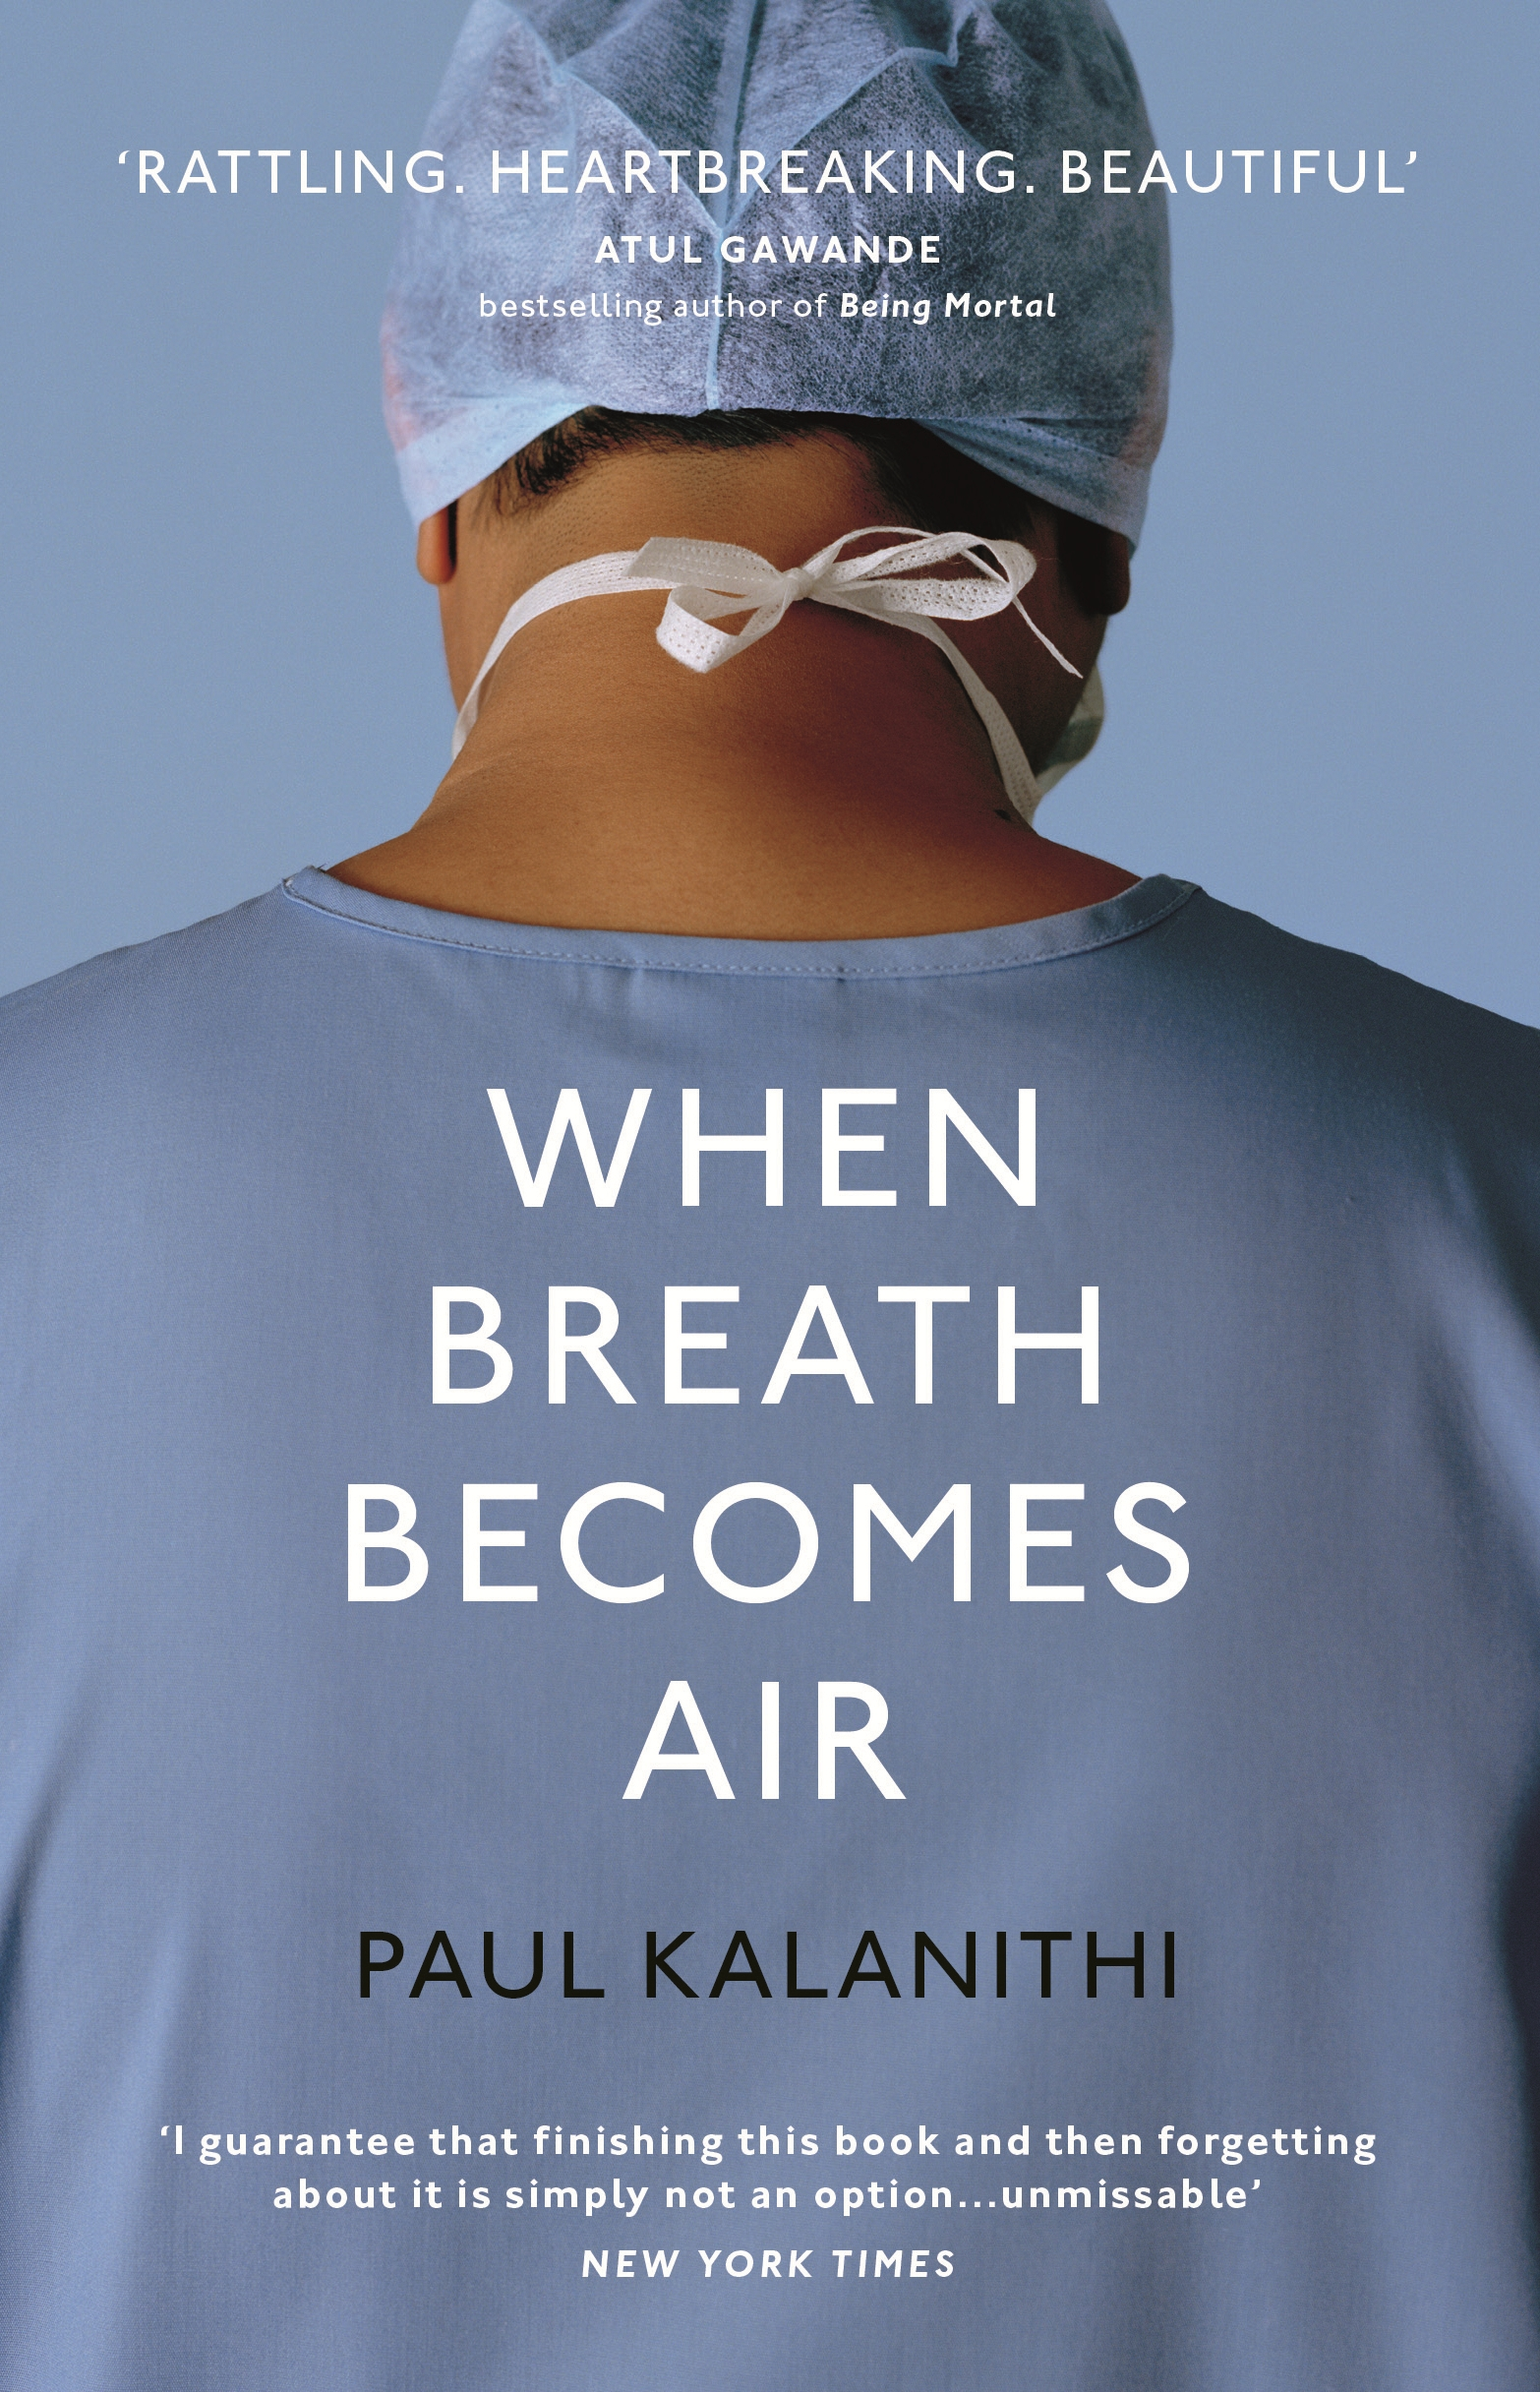 When Breath Becomes Air by Paul Kalanithi, ISBN: 9781847923677